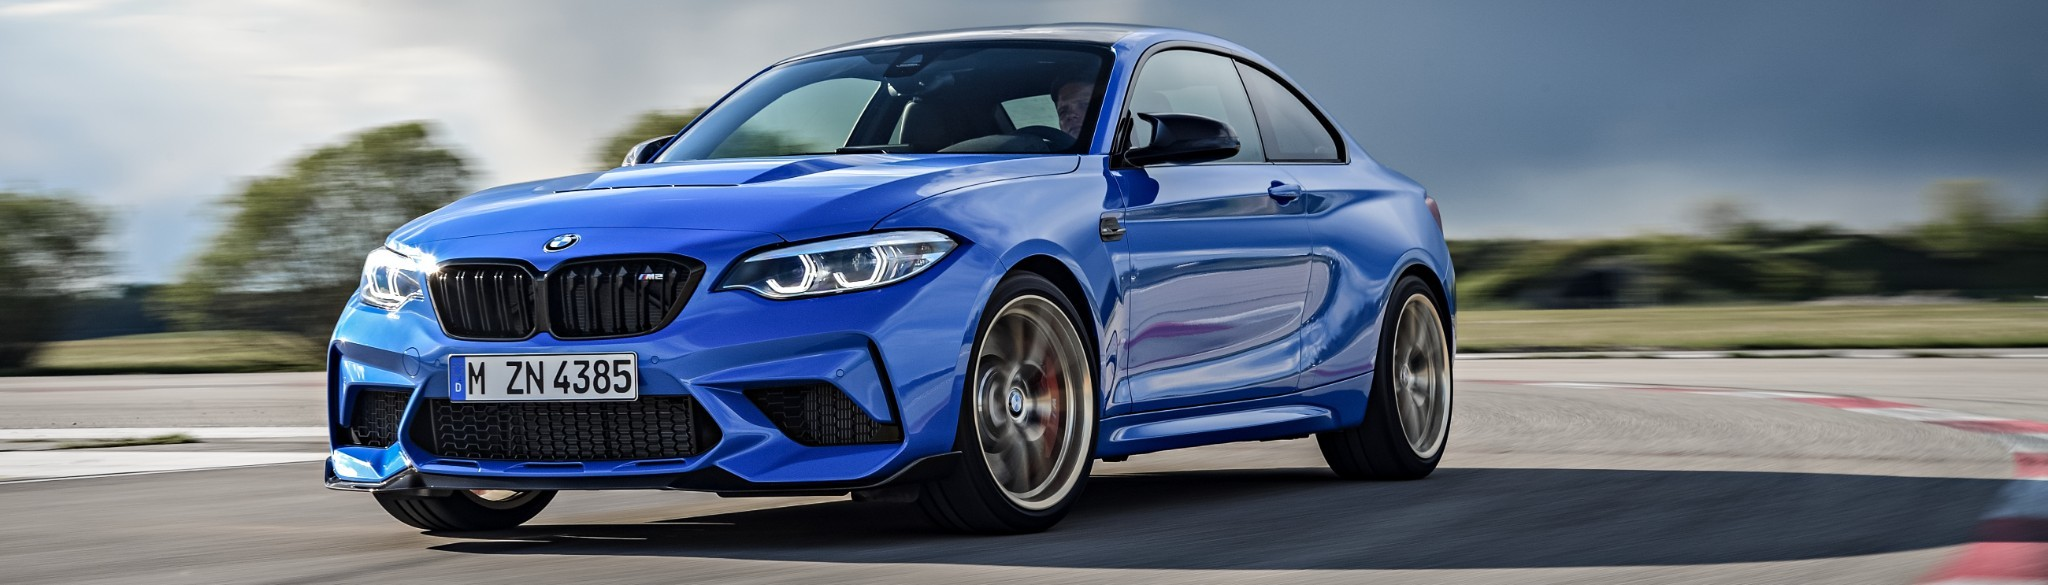 The all new bmw m2 c